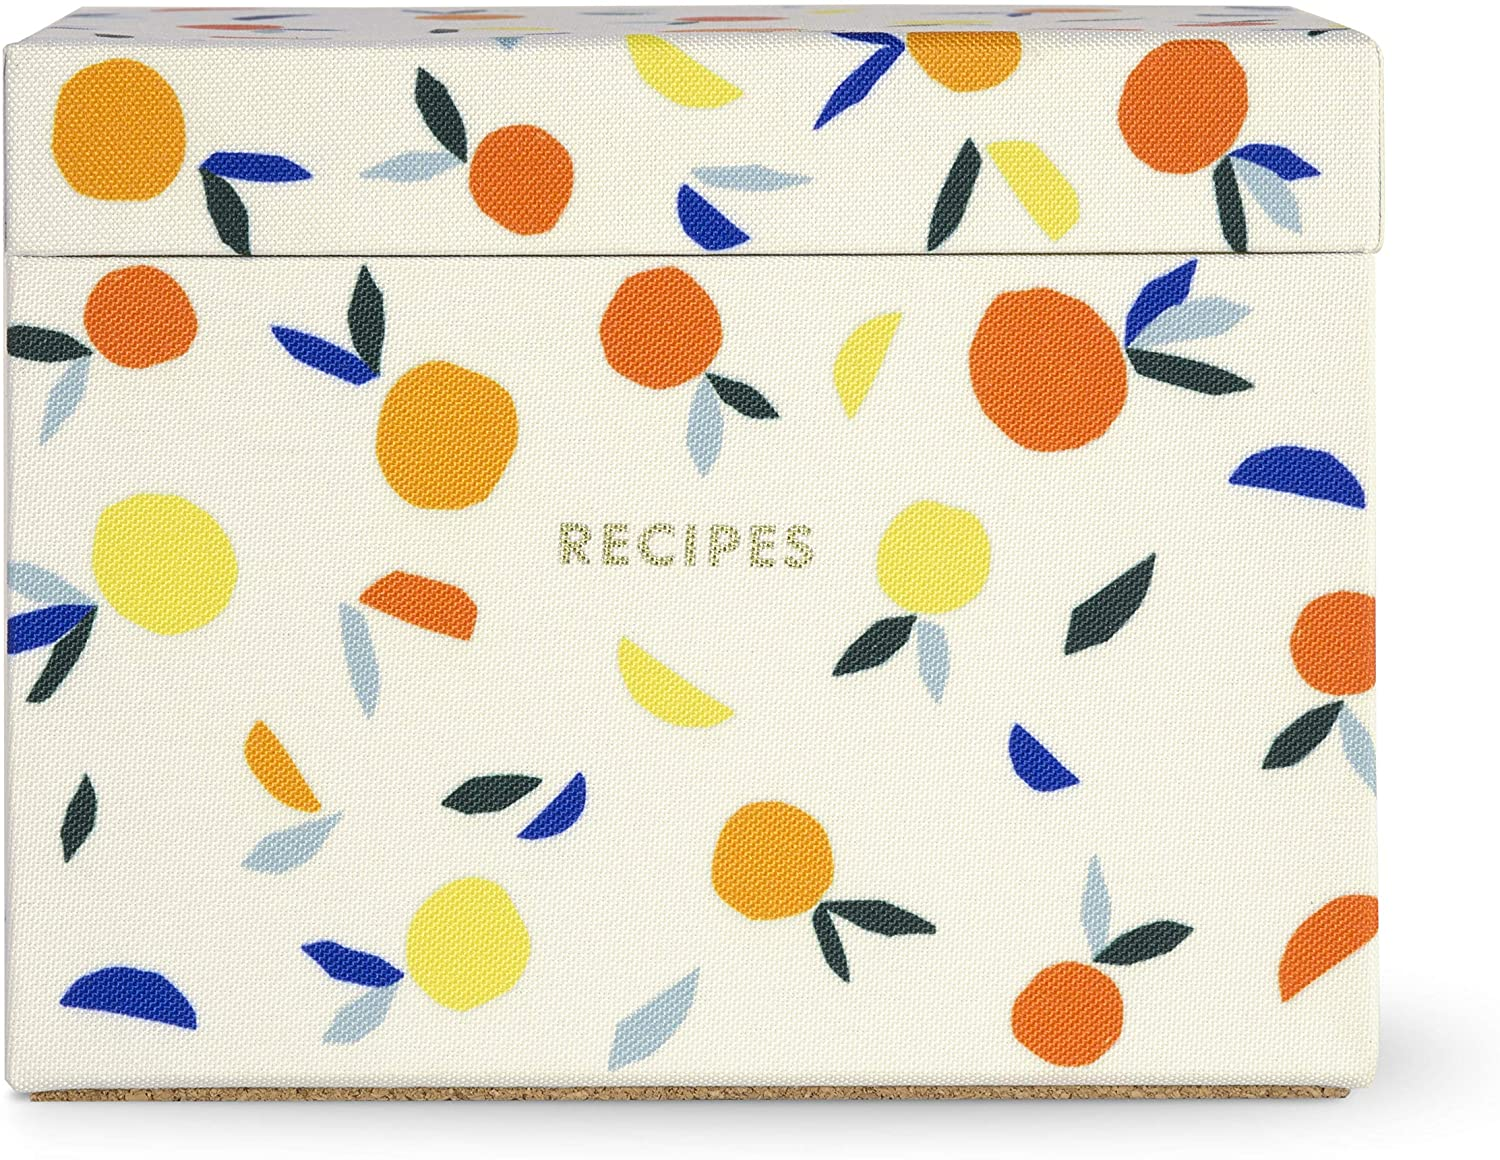 Kate Spade New York Recipe Box with 40 Double Sided Recipe Cards